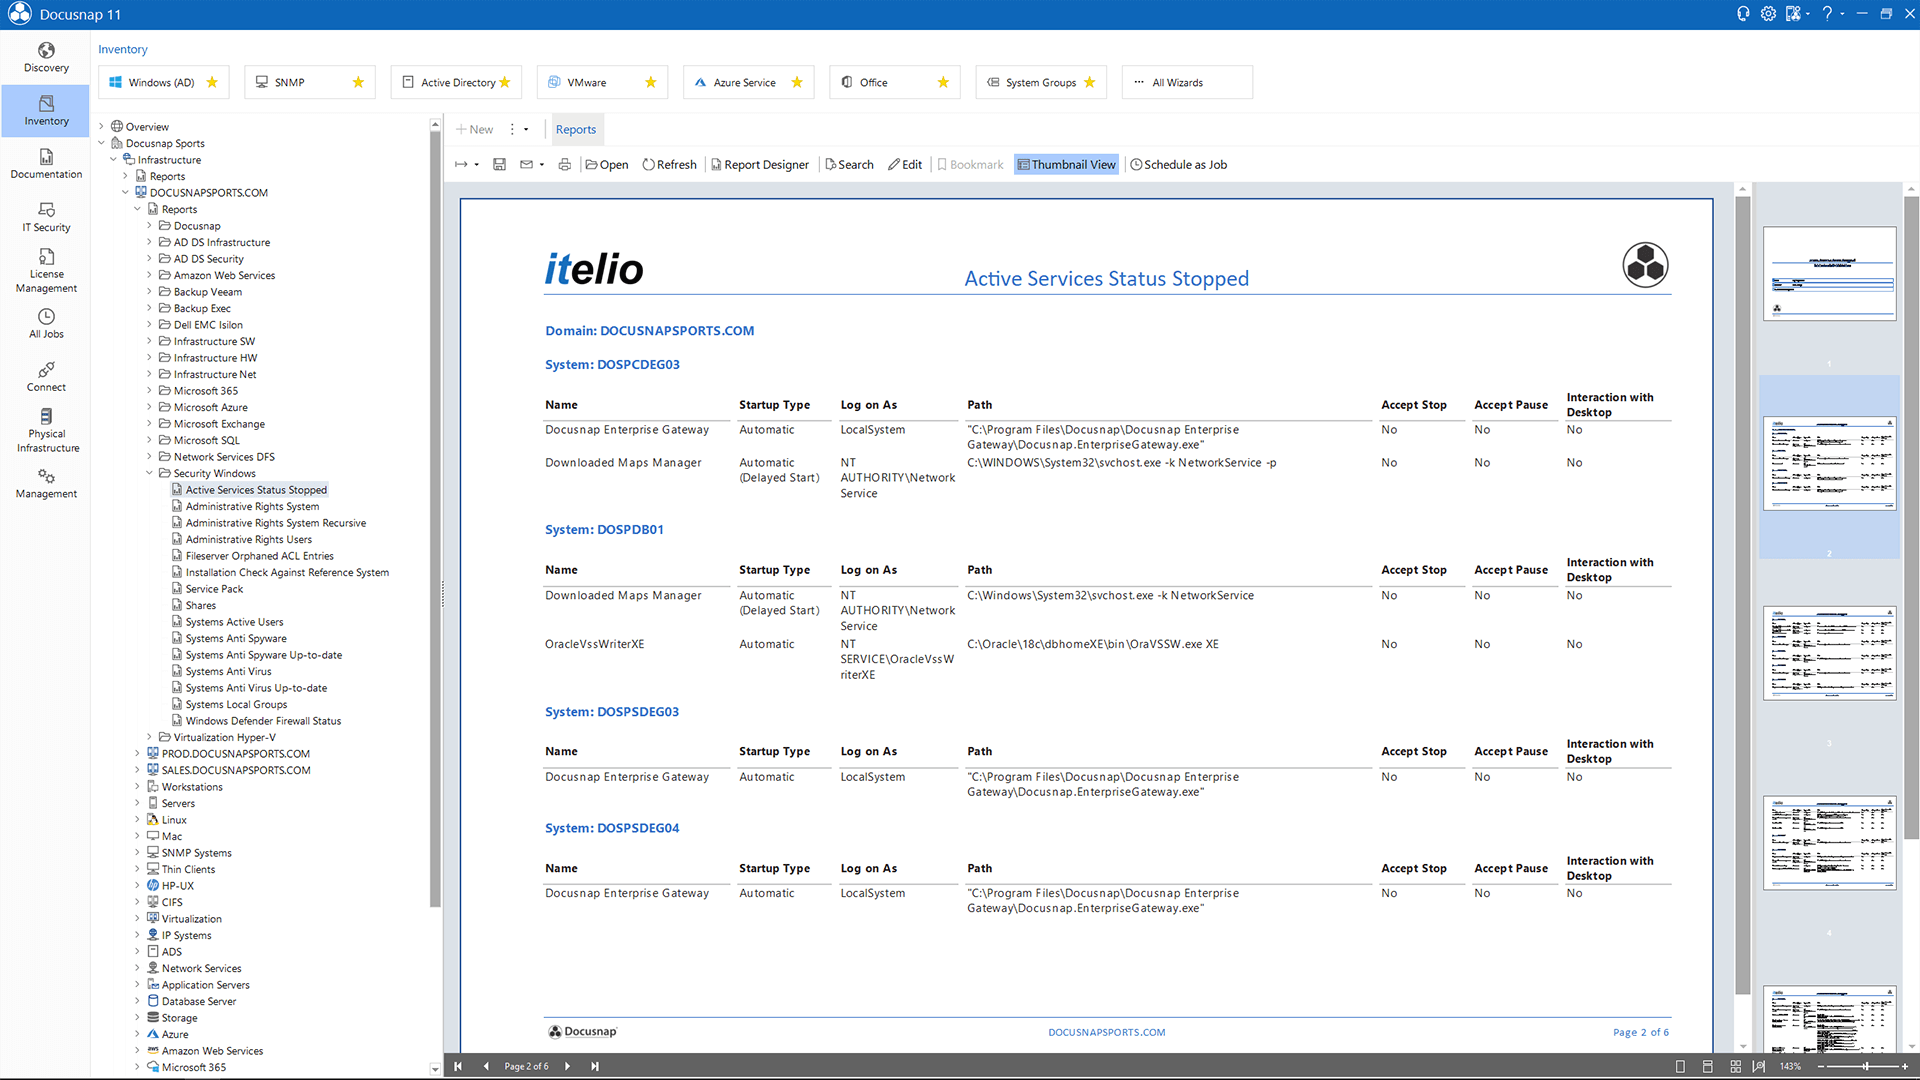 Screenshot: Report Active Services Status Stopped